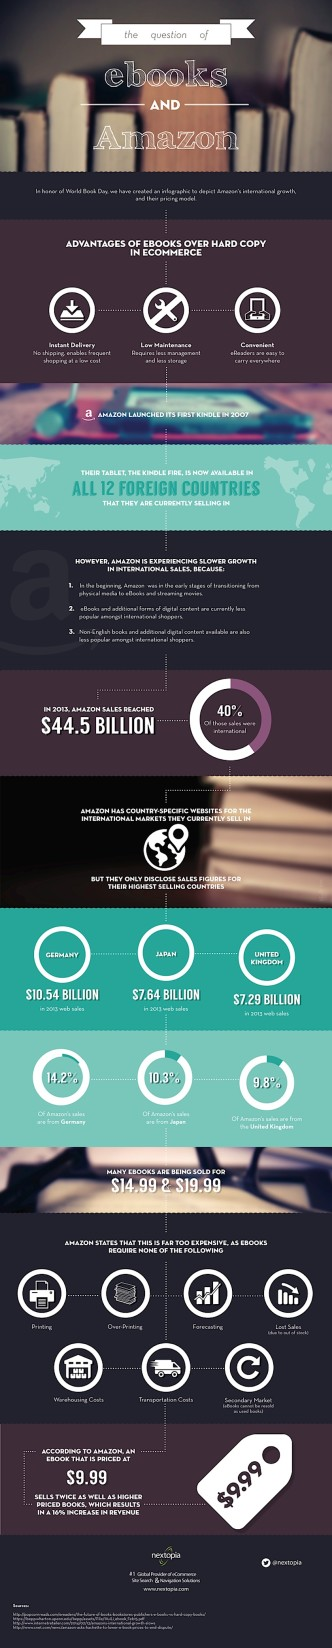 Amazon's influence on ebook growth #infographic